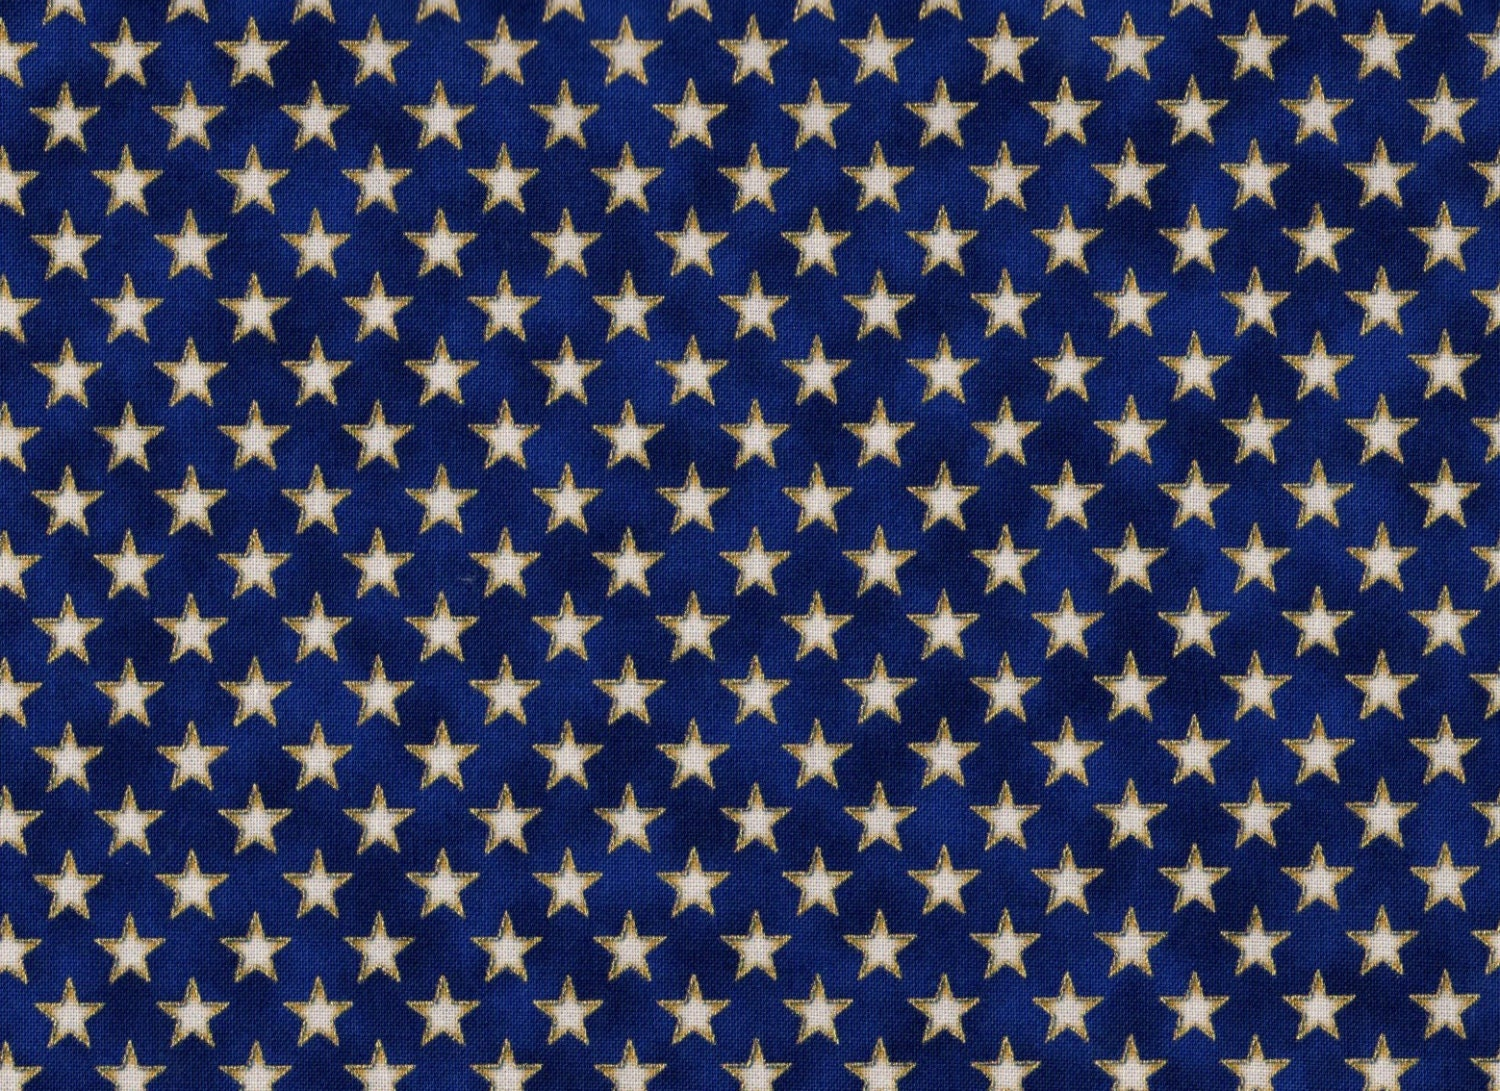 Gold star fabric navy blue star fabric star fabric blue and for Star design fabric